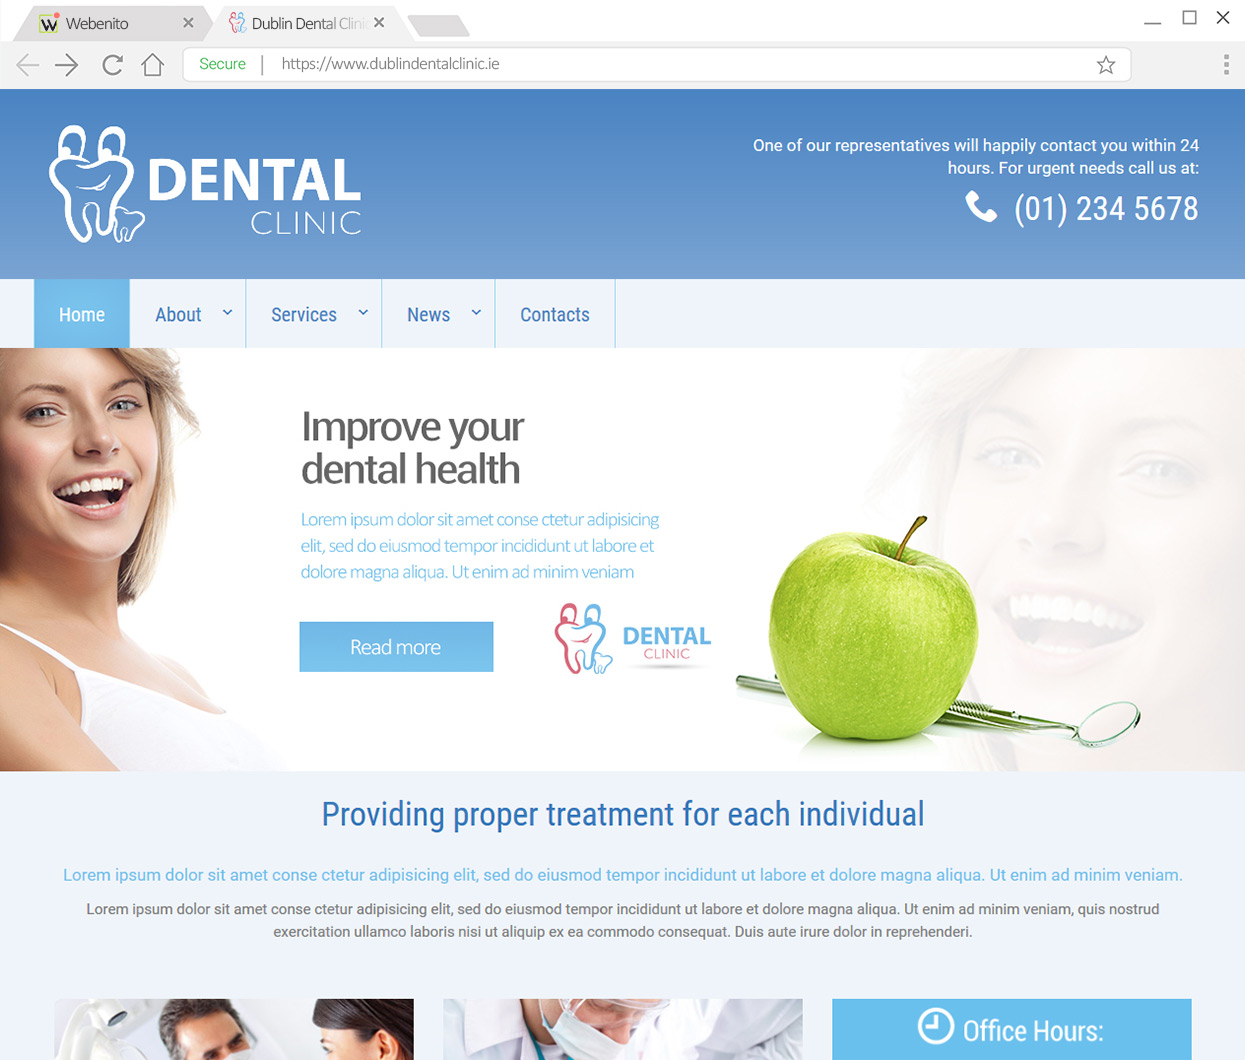 Webenito Case Study - Dublin Dental Clinic